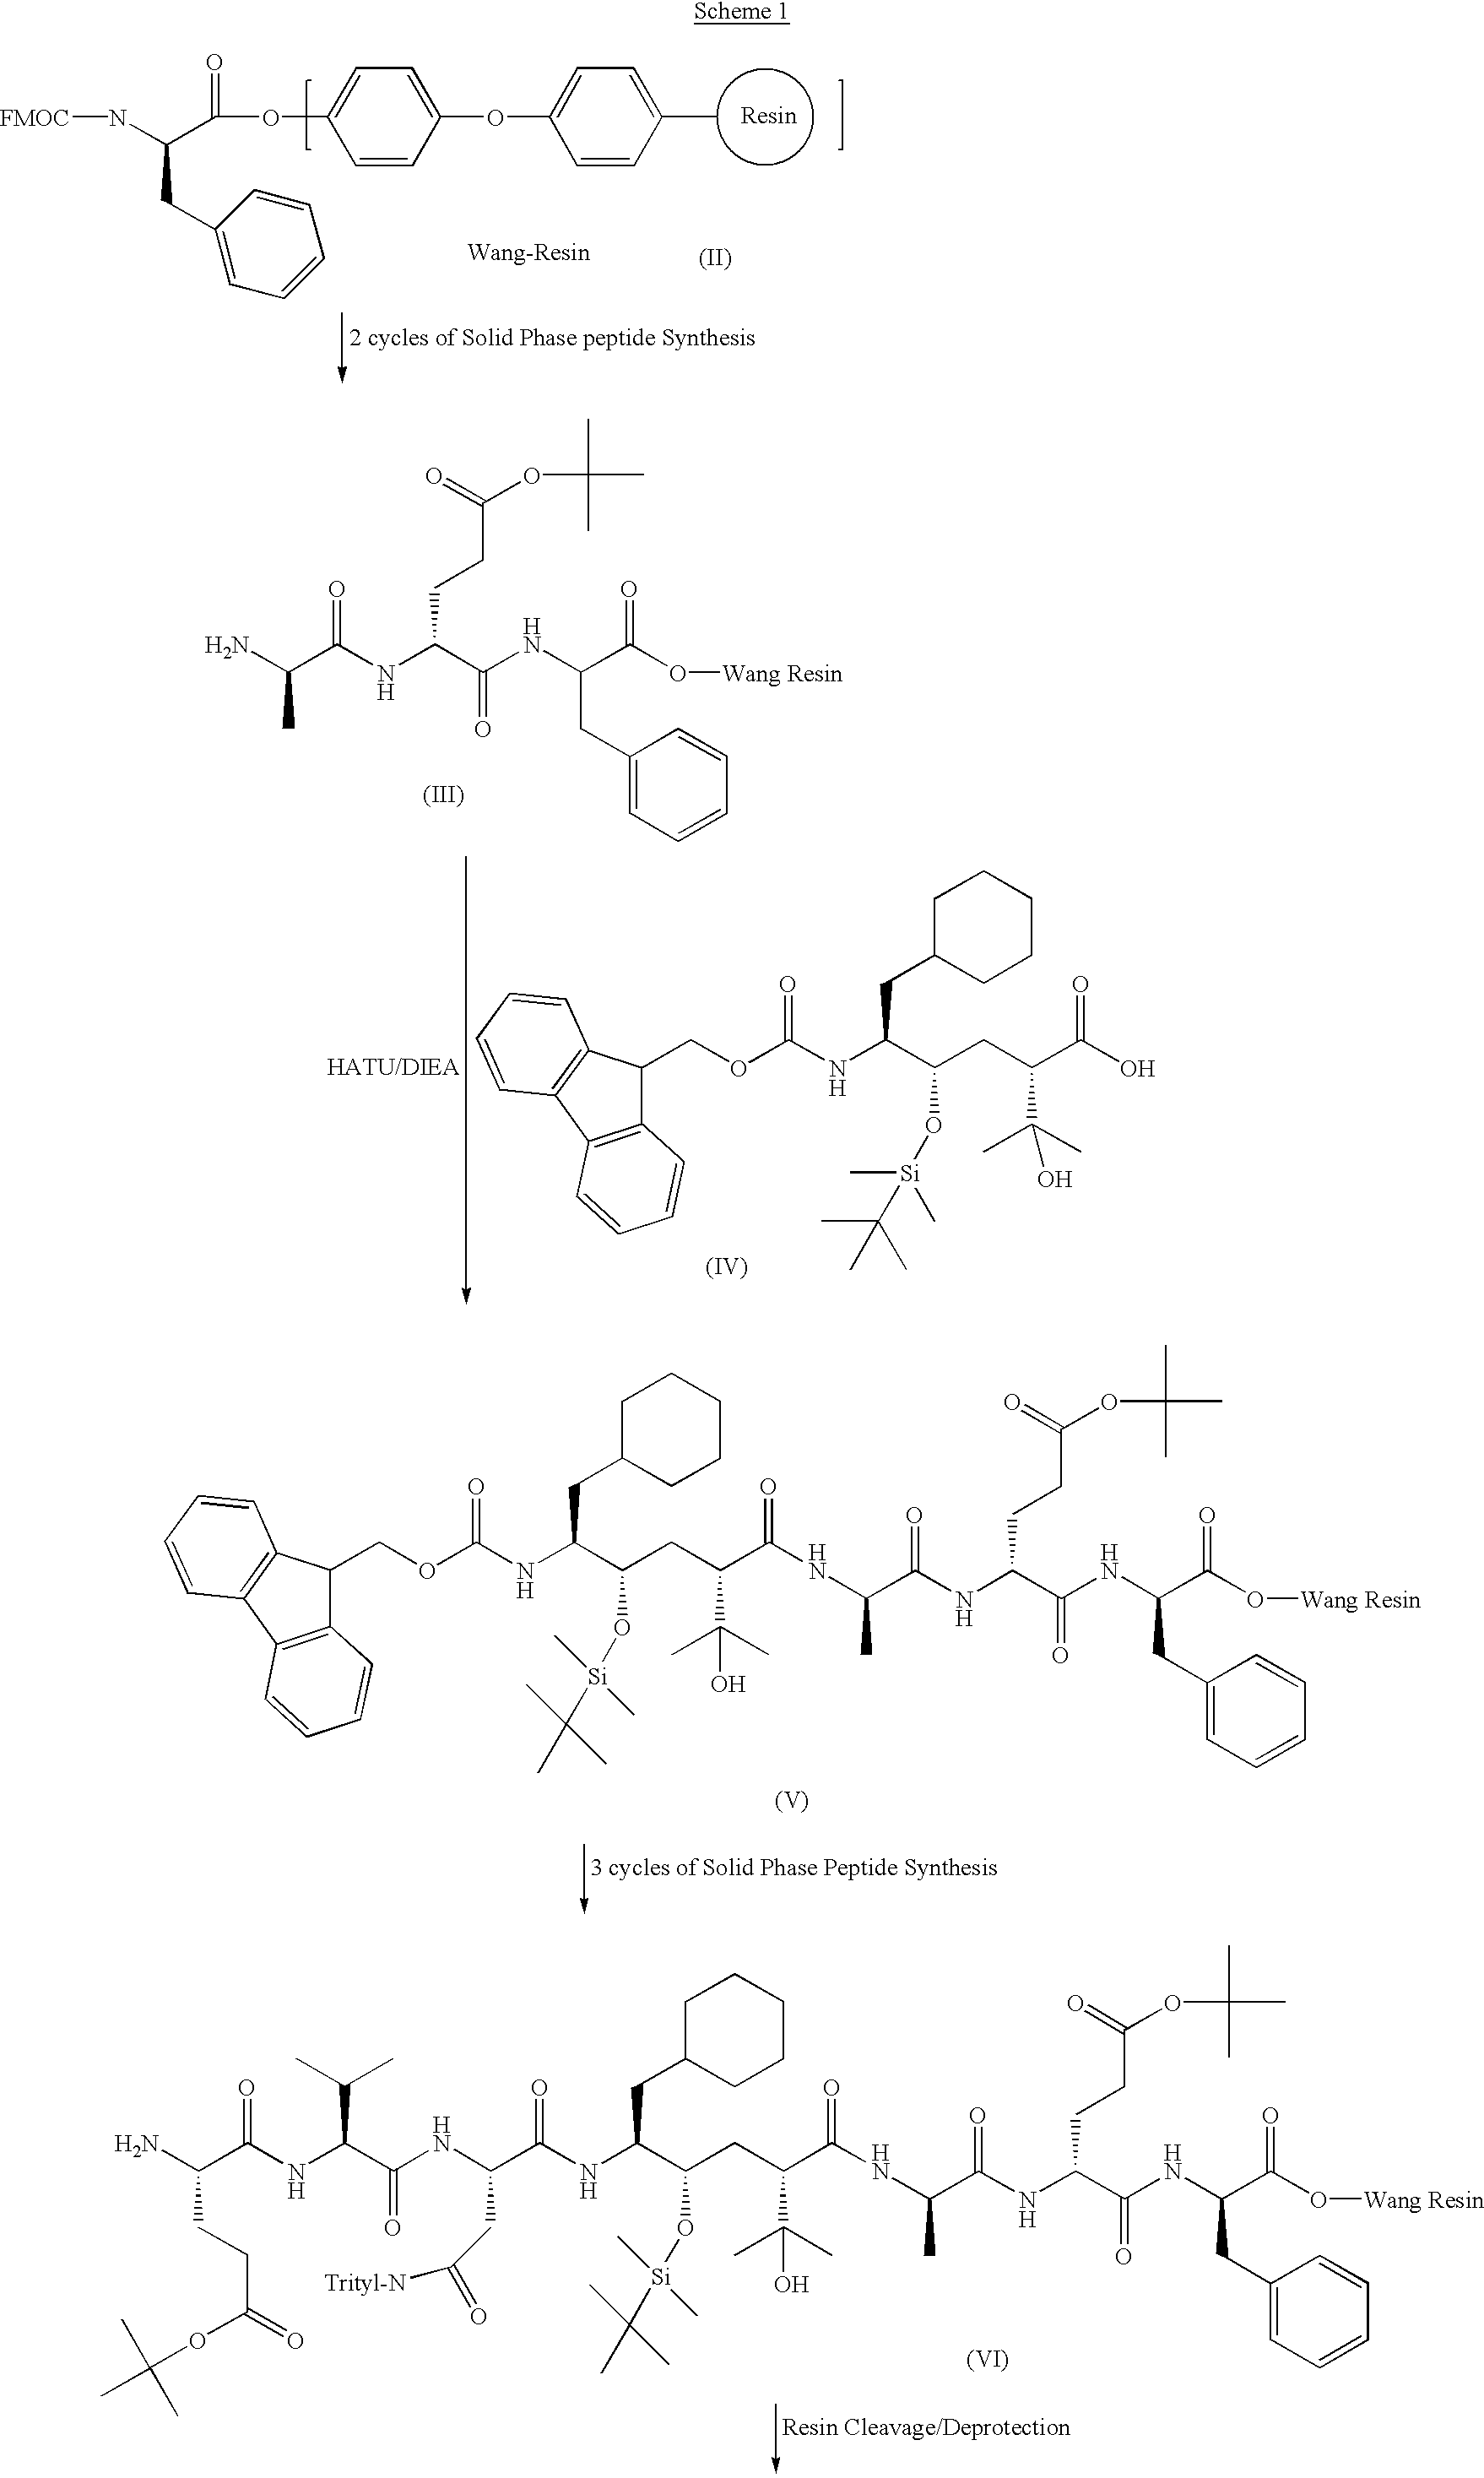 solid phase peptide synthesis thesis I understand that my thesis will become part of the permanent the scheme of solid phase peptide synthesis 38 32 the removal of the fmoc group by 0.